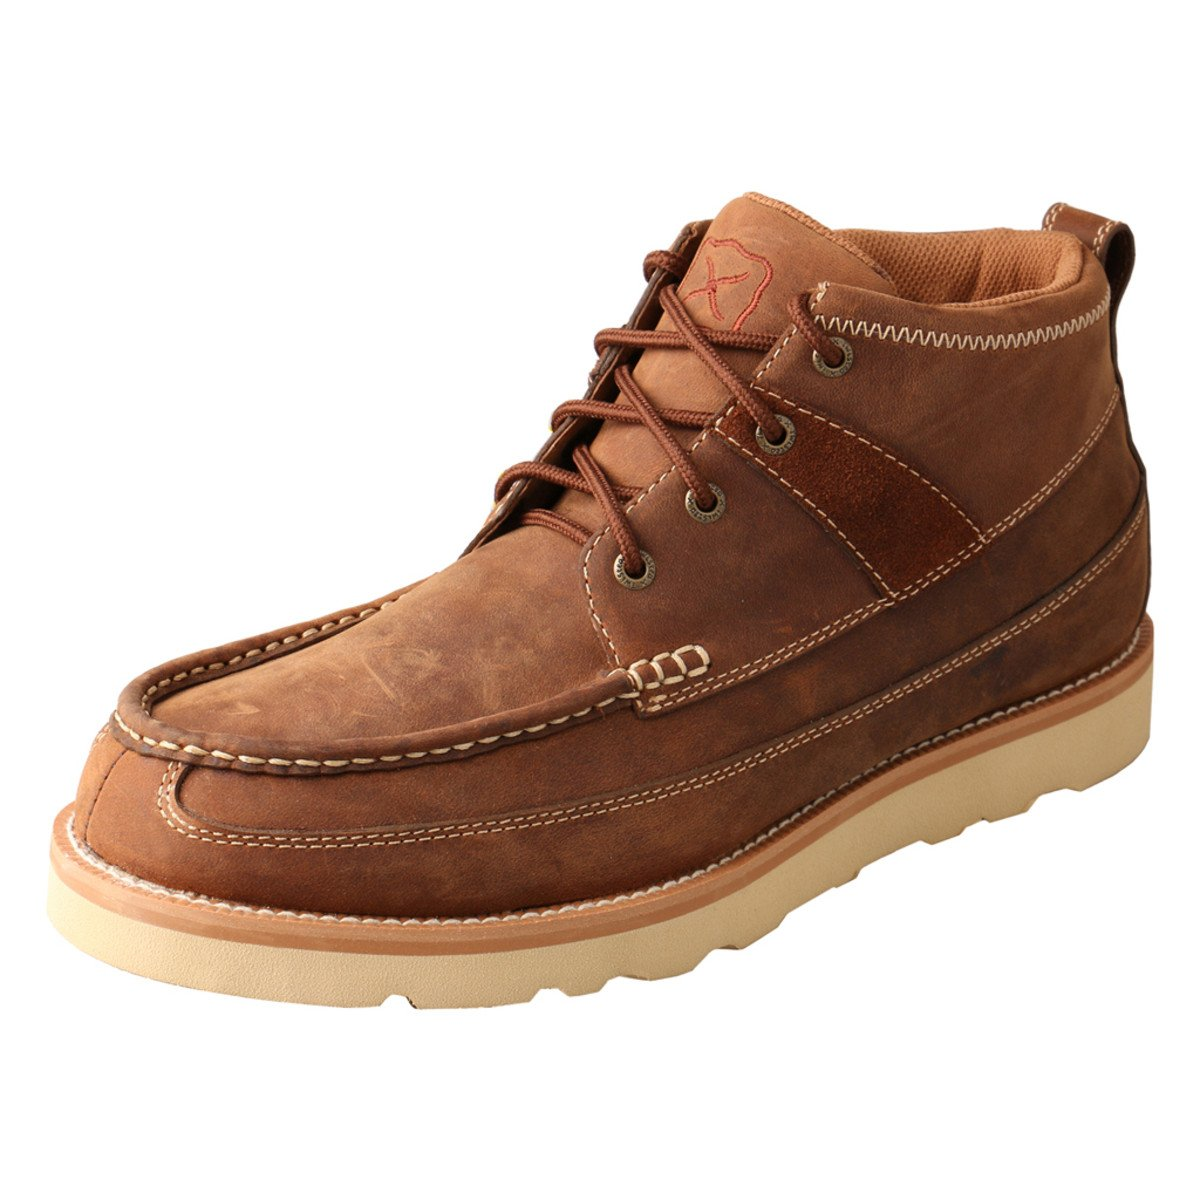 Men's 4 Wedge Sole Boot by Twisted X